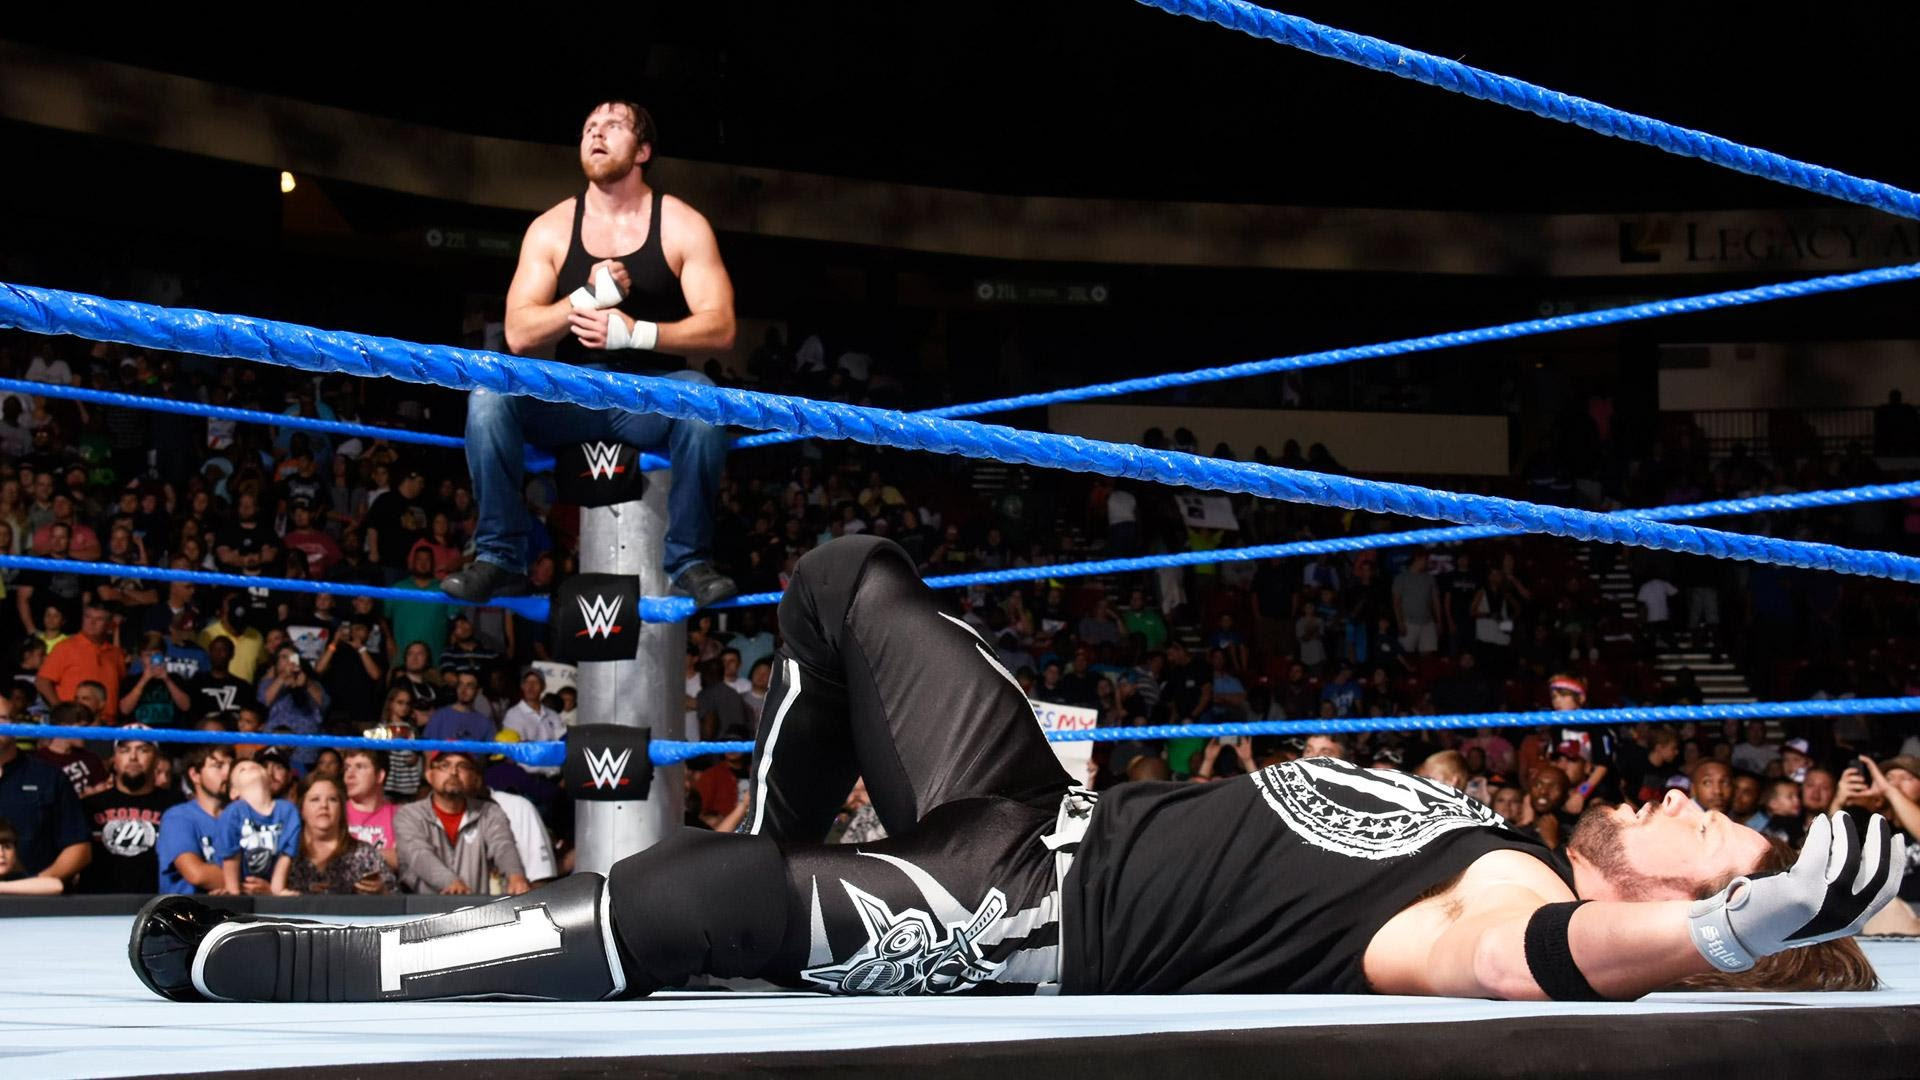 WWE: Smackdown at Oracle Arena